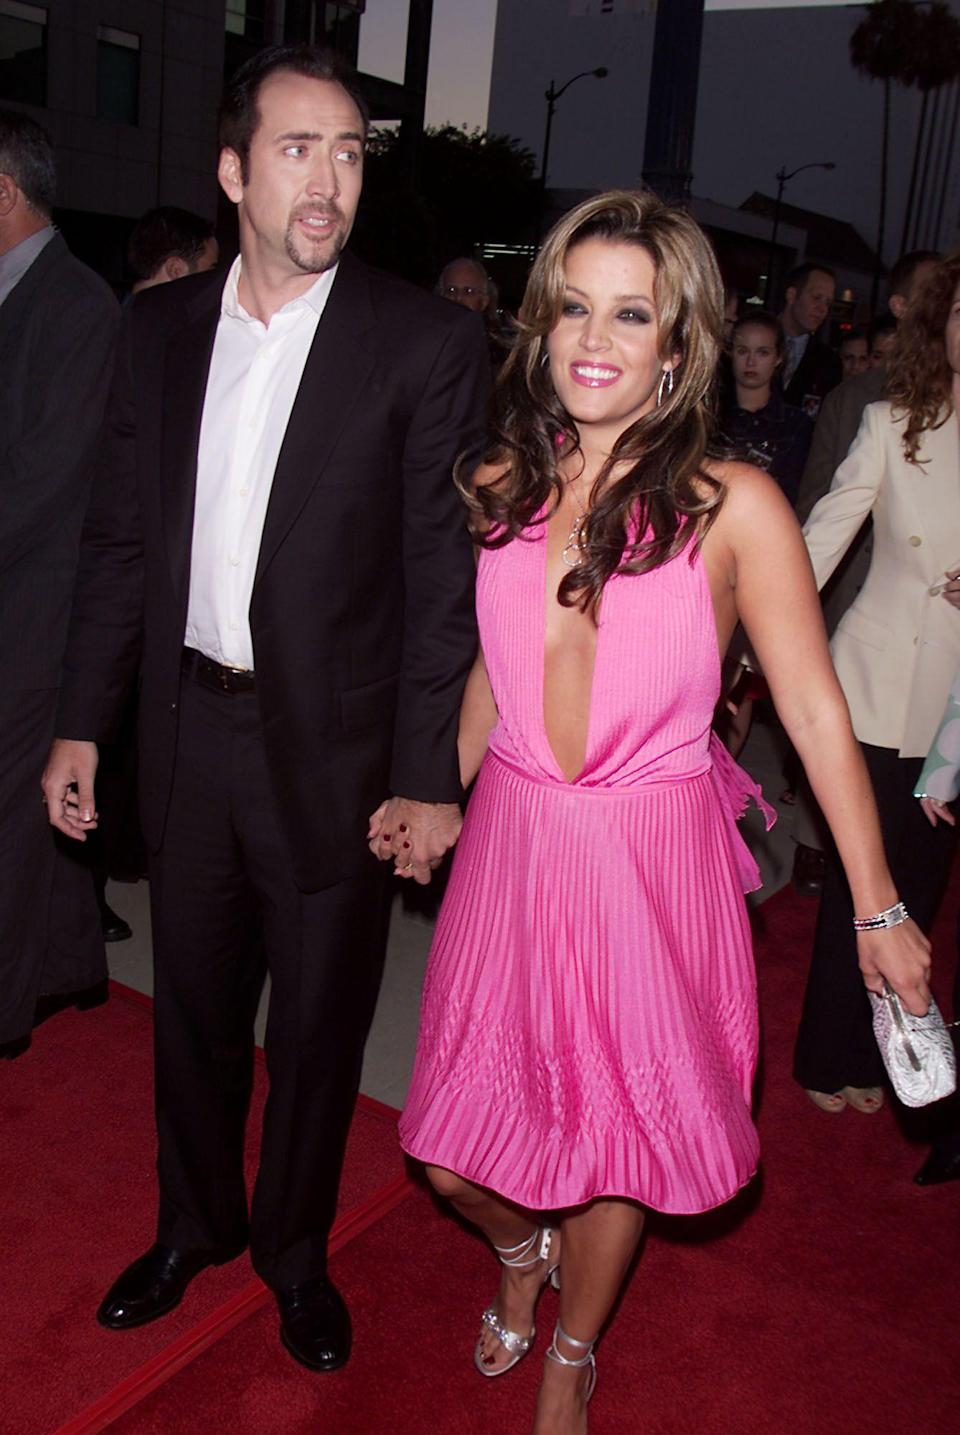 <p>Unfortunately, celebrity marriages are notorious for ending in divorce. But just because some celebs may have been unlucky in love with one relationship doesn't mean they've given up hope. In fact, a lot of stars have had three or more marriages in their pursuit of lasting love. Here are 40 entertainers who have had multiple marriages, including some you might not expect.</p>